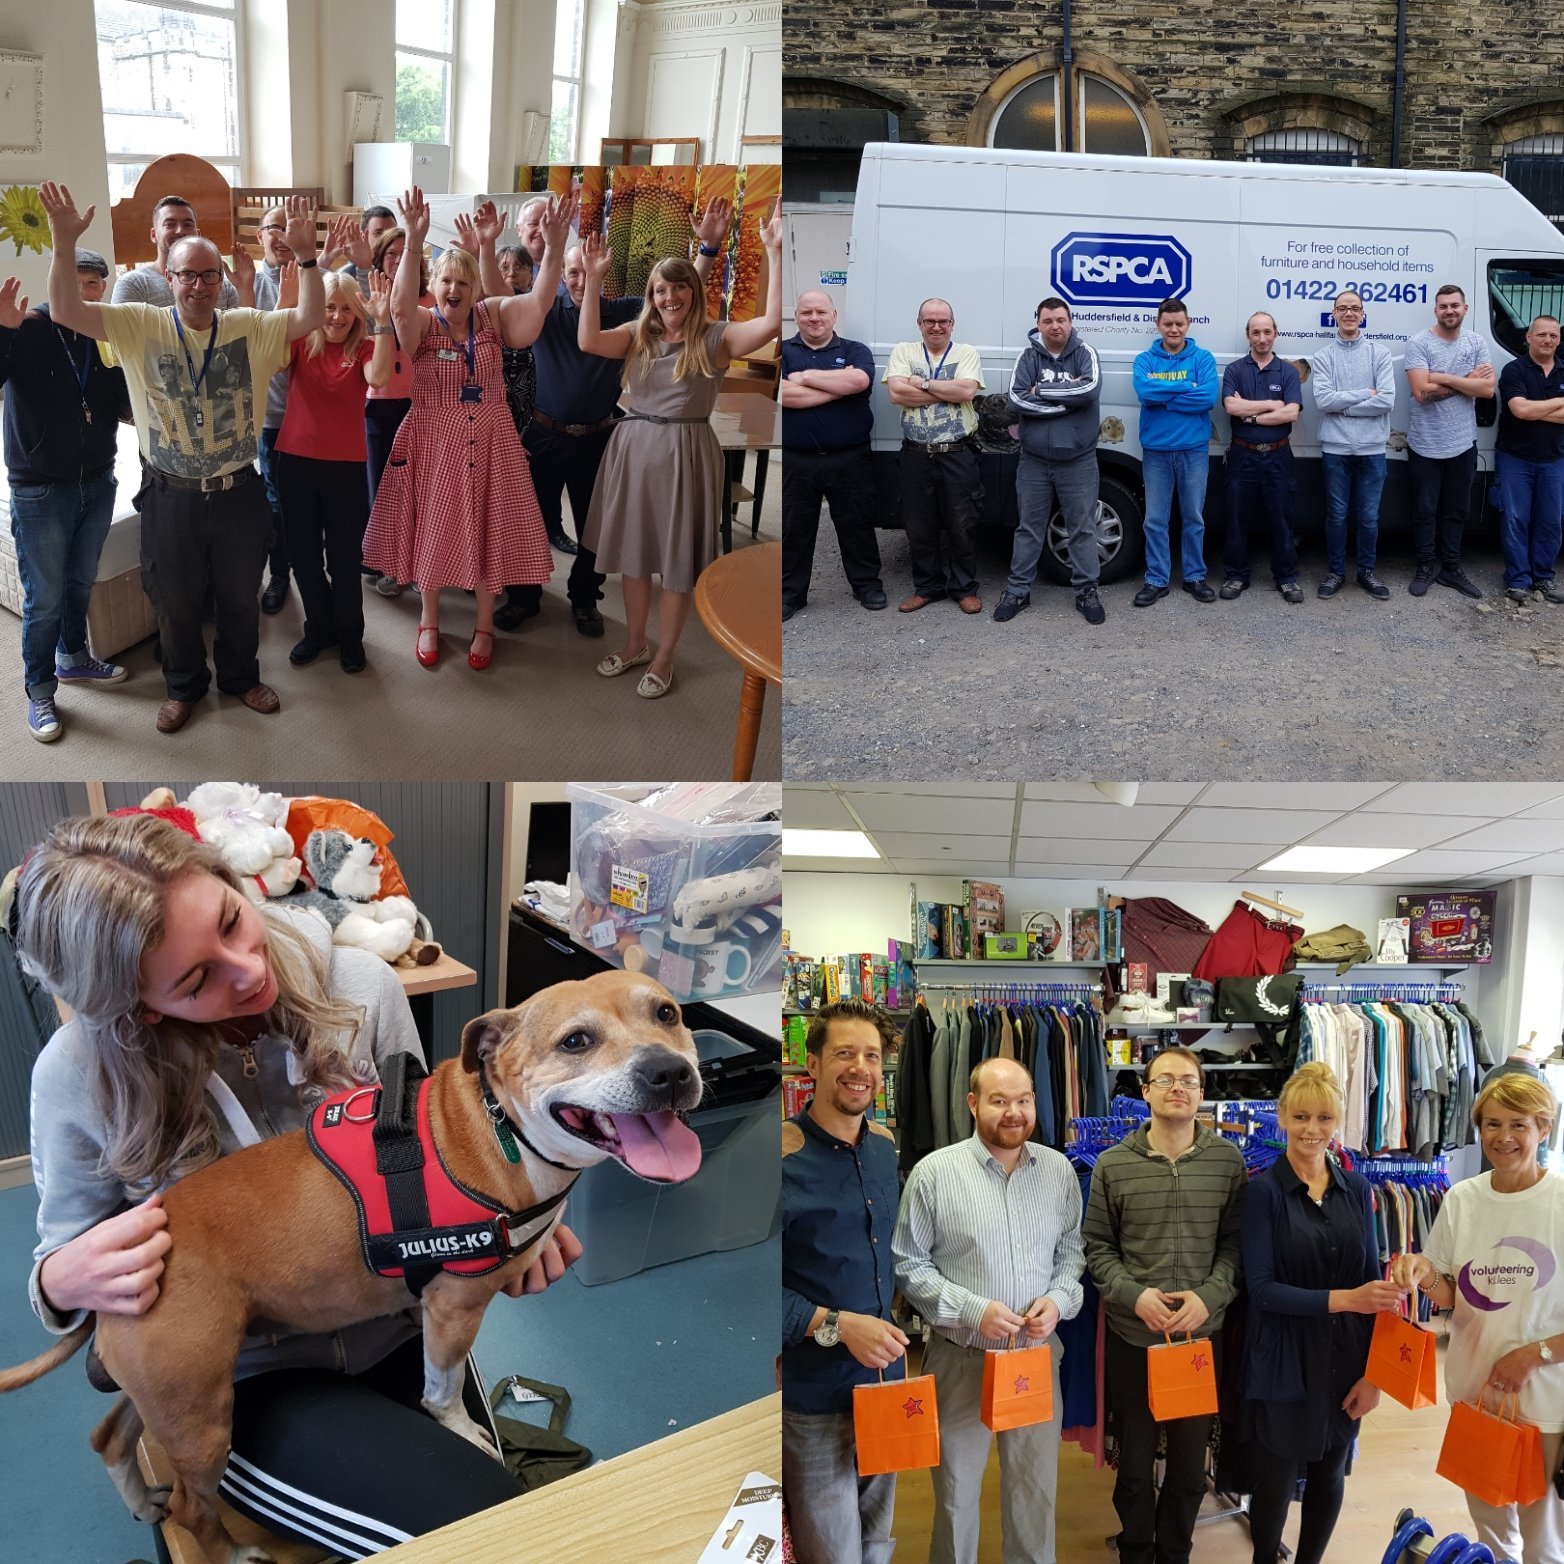 """RSPCA Halifax, Huddersfield & Bradford on Twitter: """"We've had a great  #VolunteersWeek with @vckirklees giving goody bags to our Charity Shop  volunteers, @RamsdensLLP helping prep for our Furry Friends event this  Sunday"""